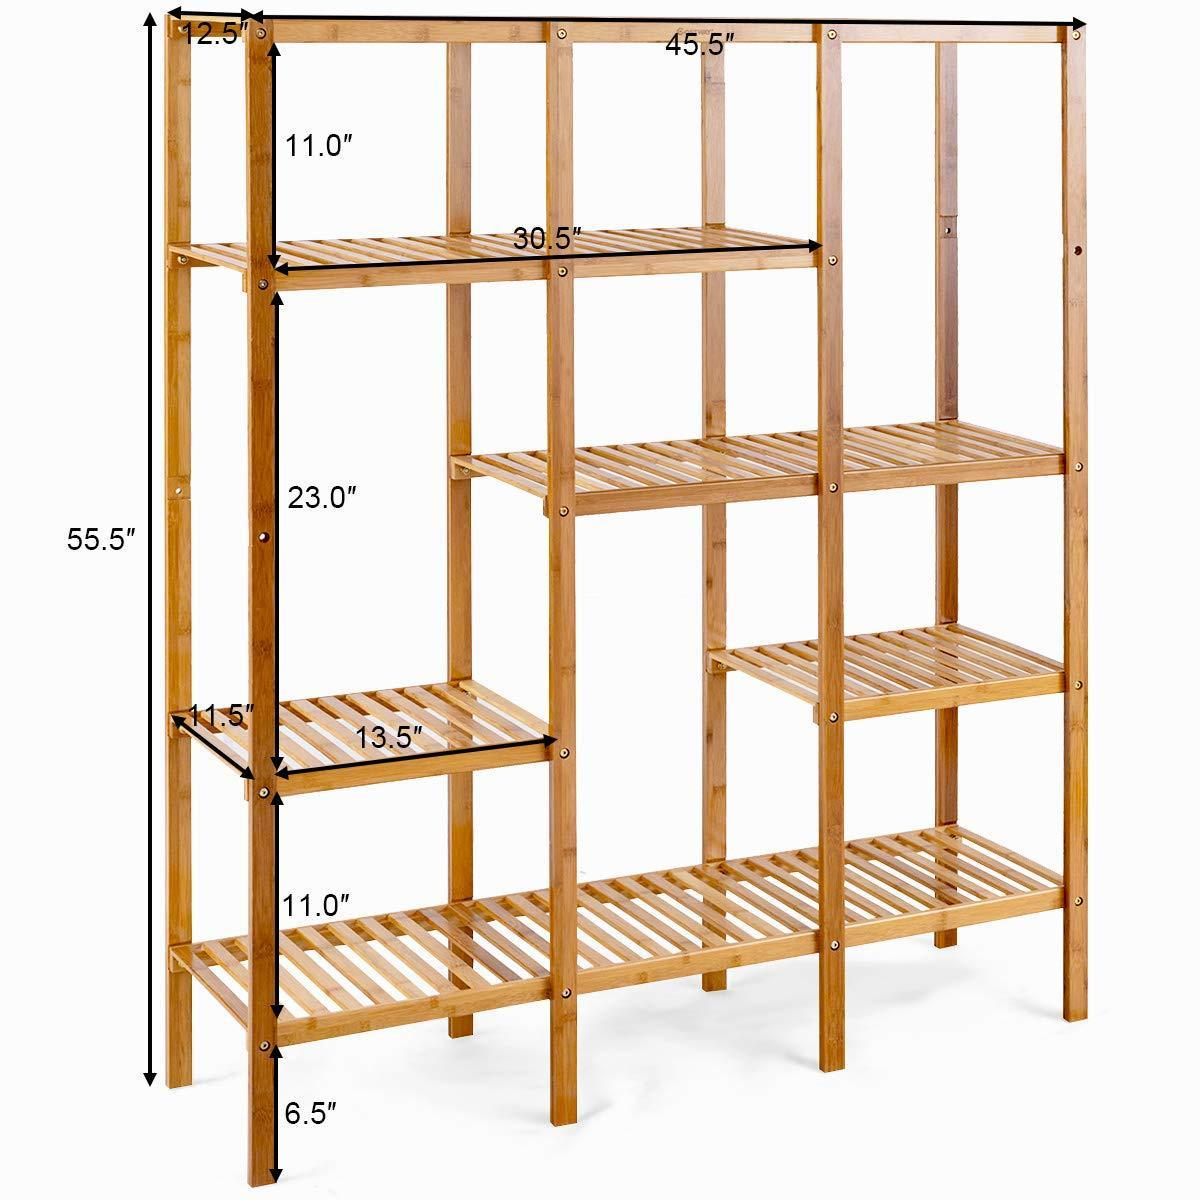 Top rated costway multifunctional bamboo shelf bathroom rack storage organizer rack plant display stand w several cell closet storage cabinet 5 tier